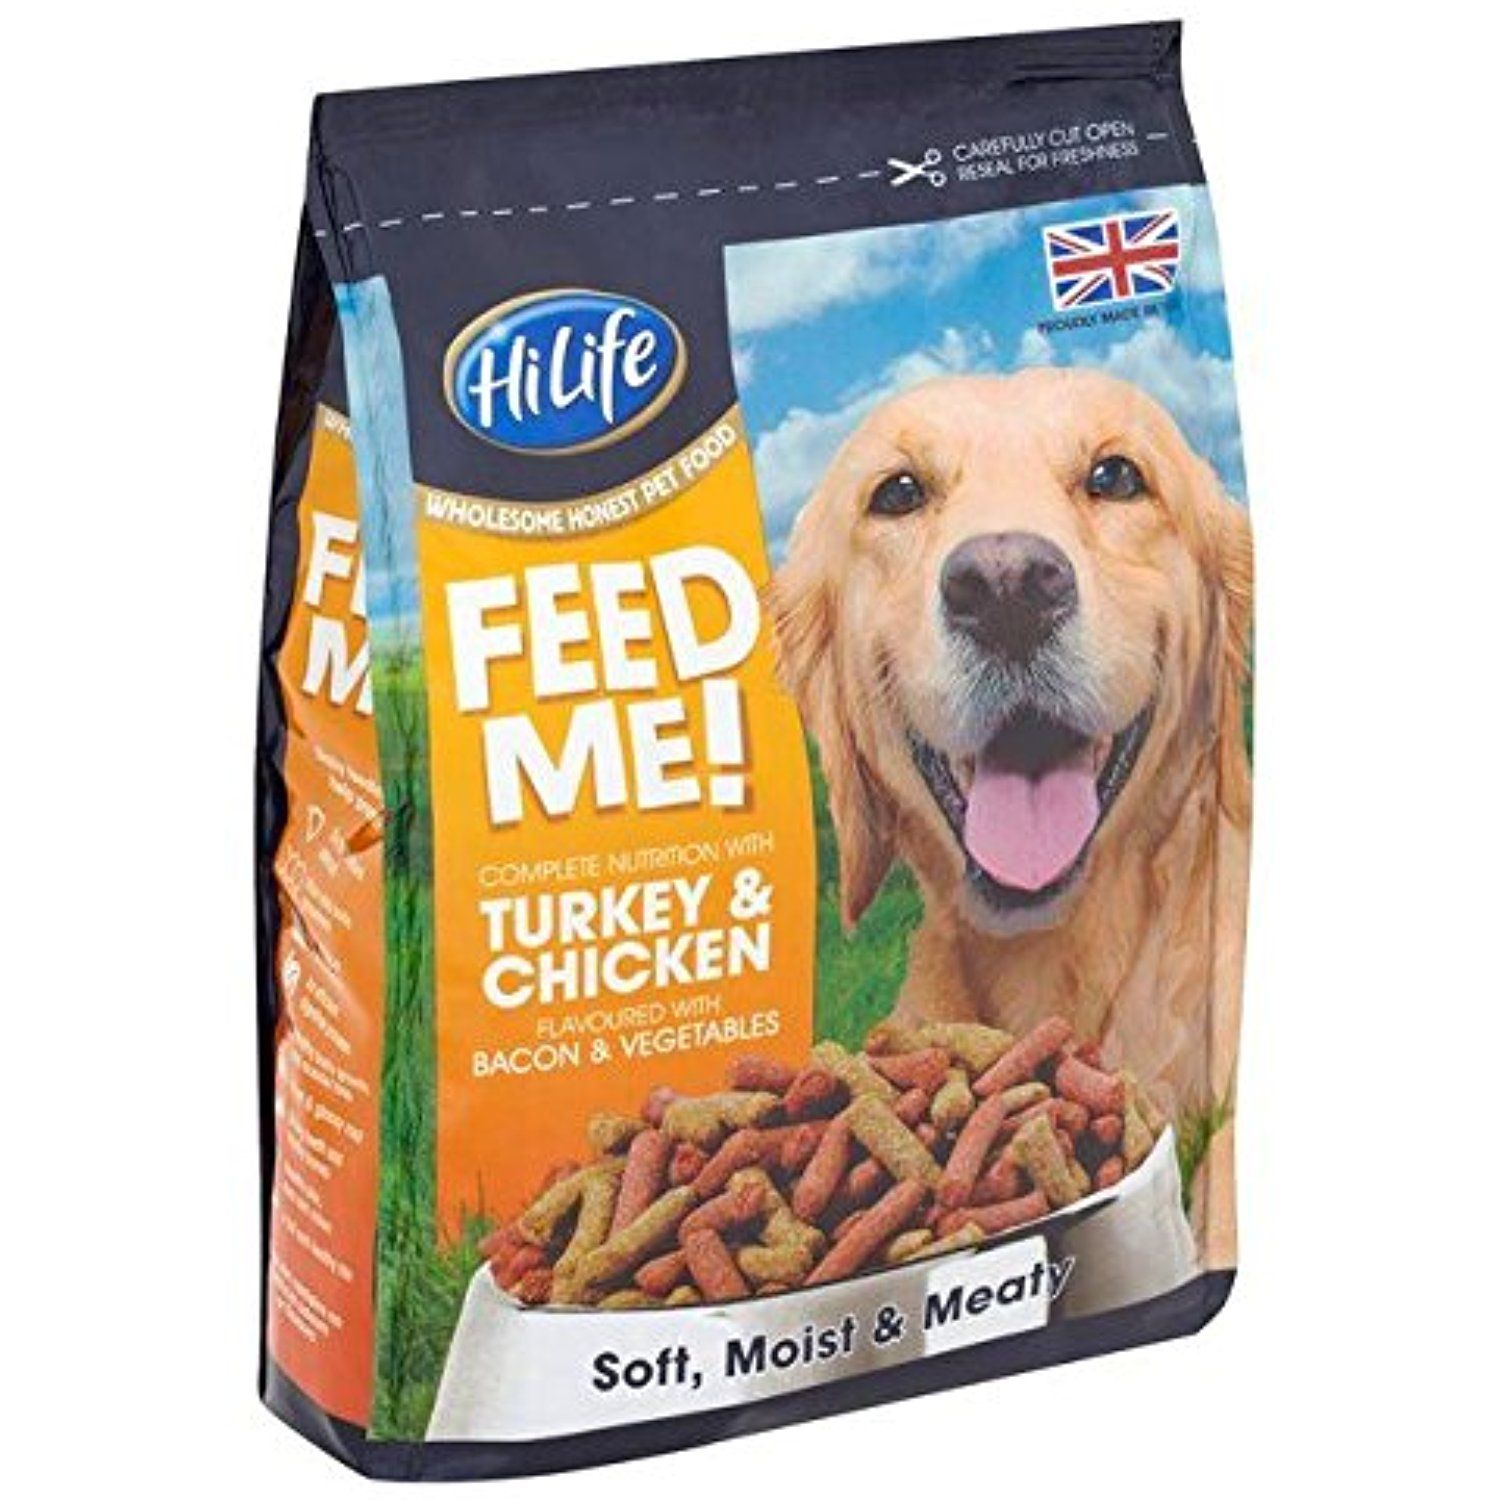 Hilife Feed Me Turkey Chicken Dry Dog Food 1 5kg Pack Of 2